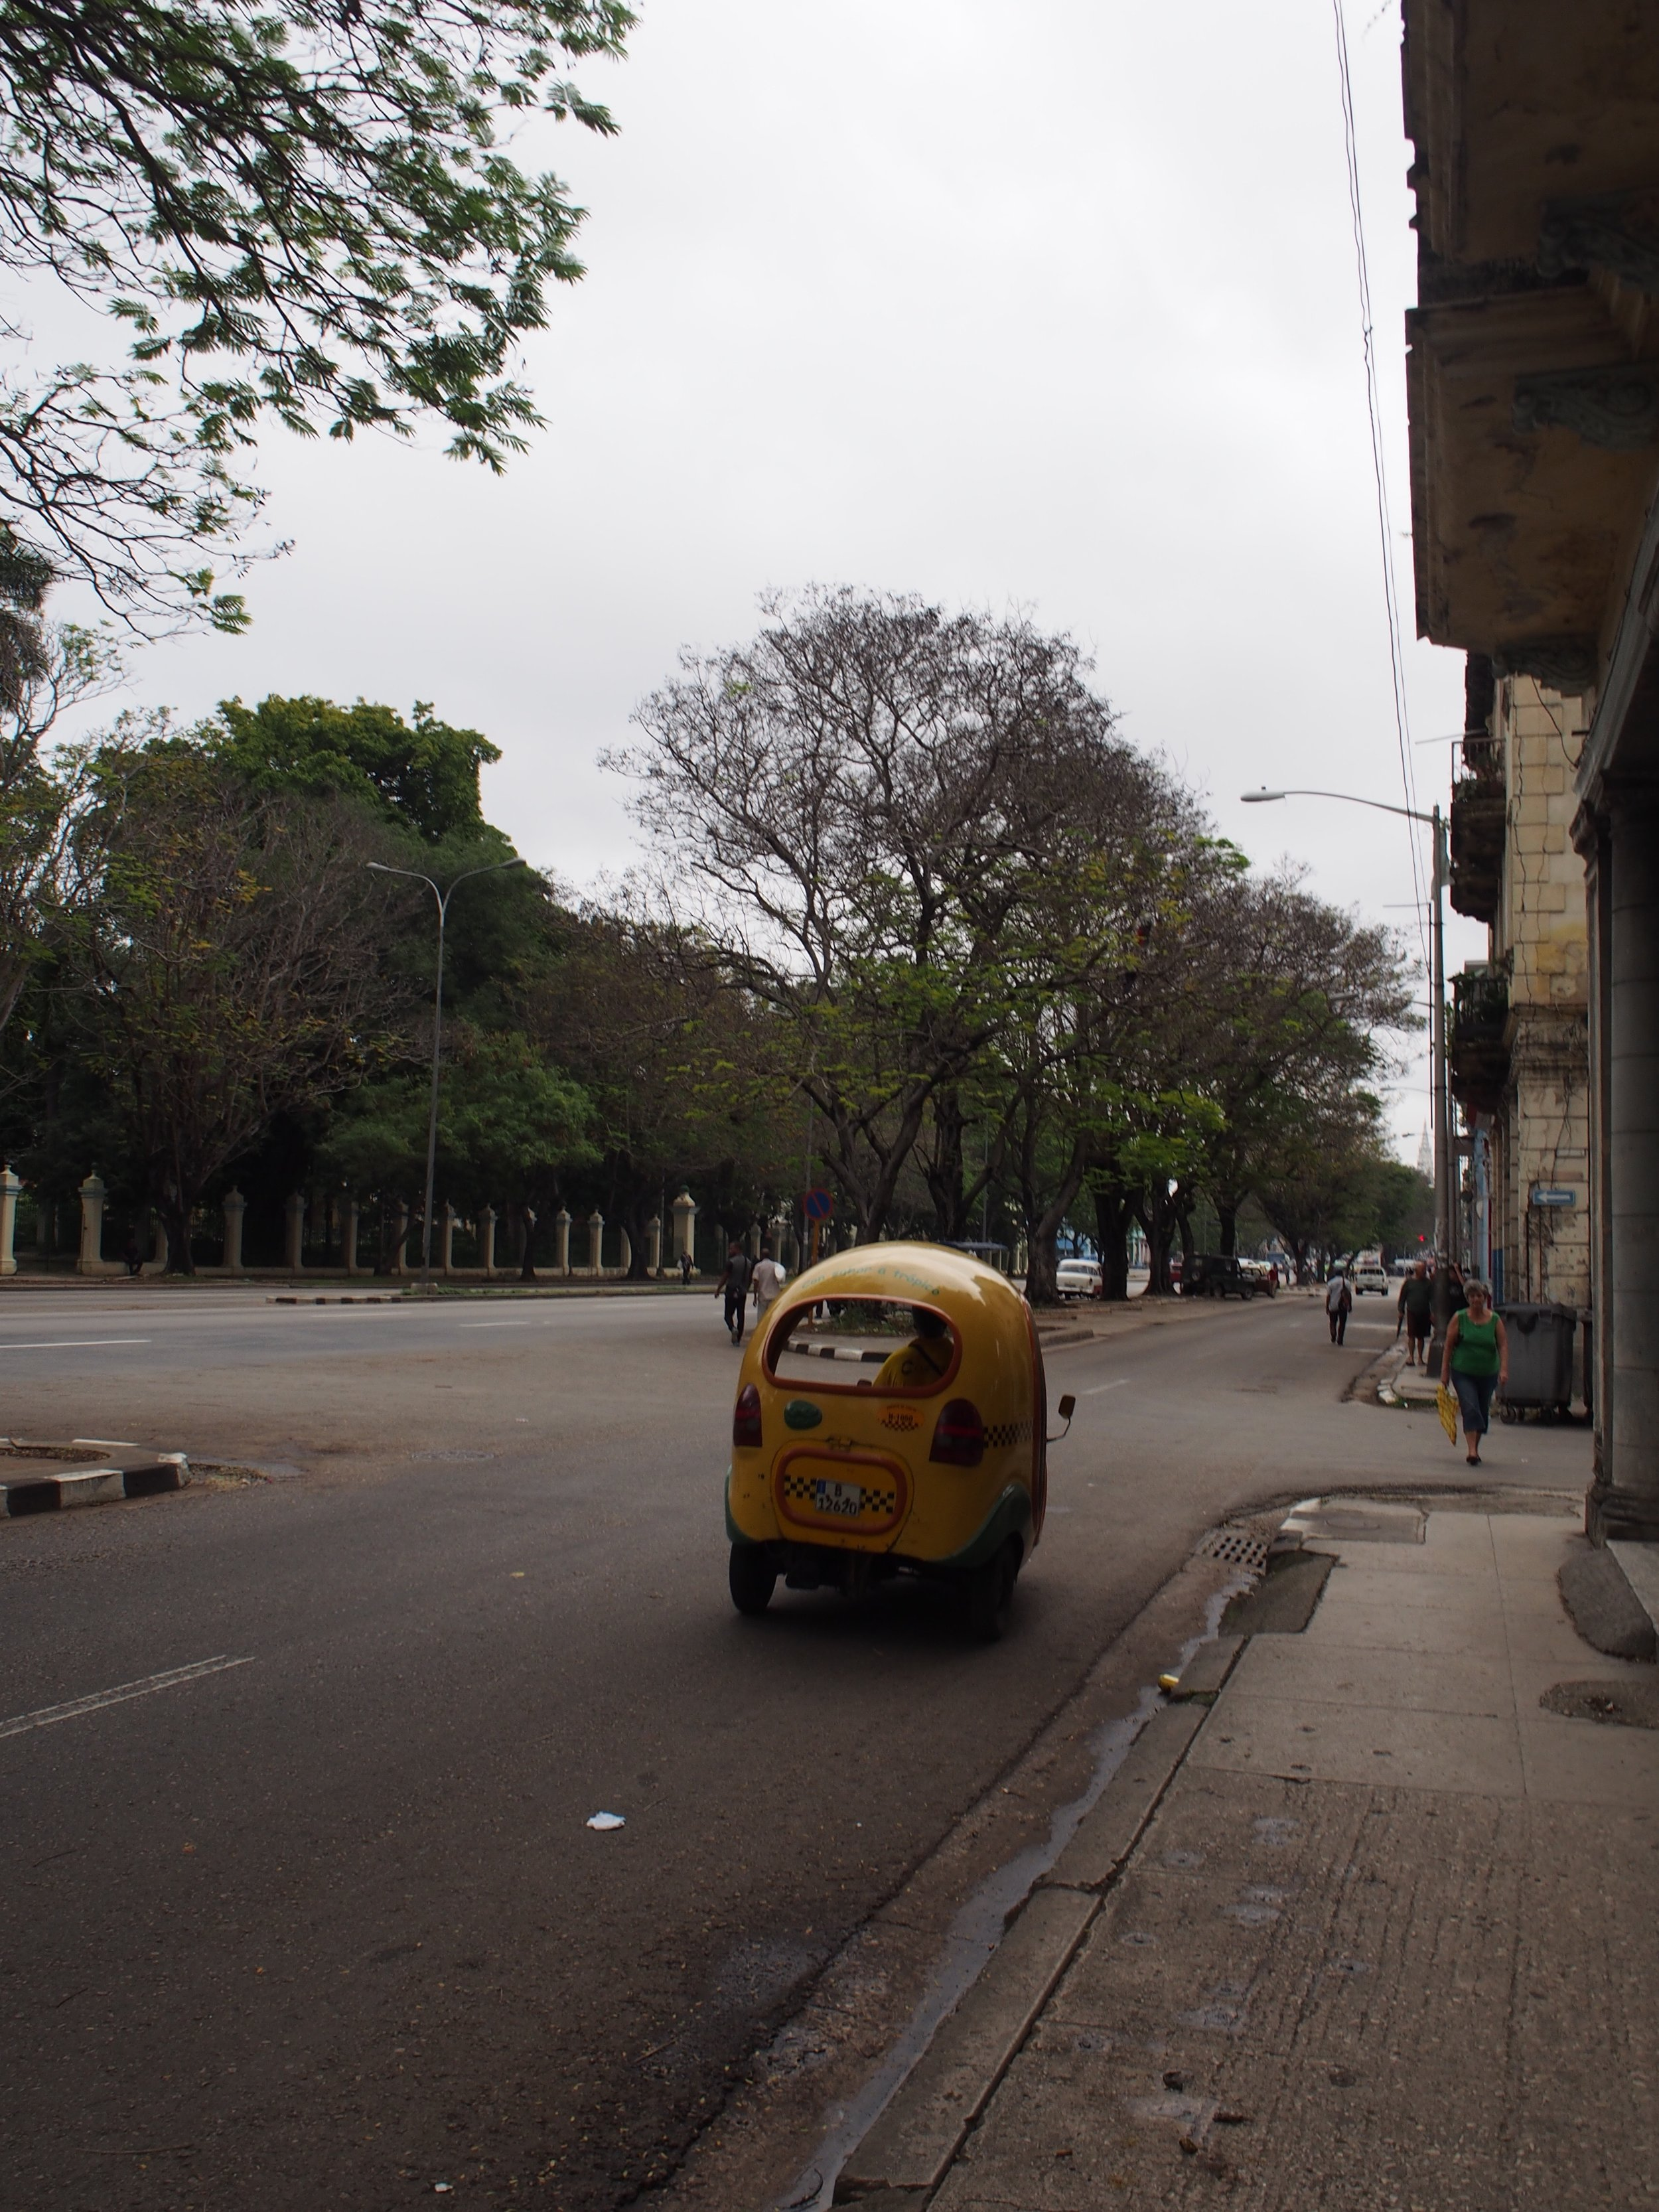 Called a 'Coco Taxi', this took us back to our casa from Habana Vieja